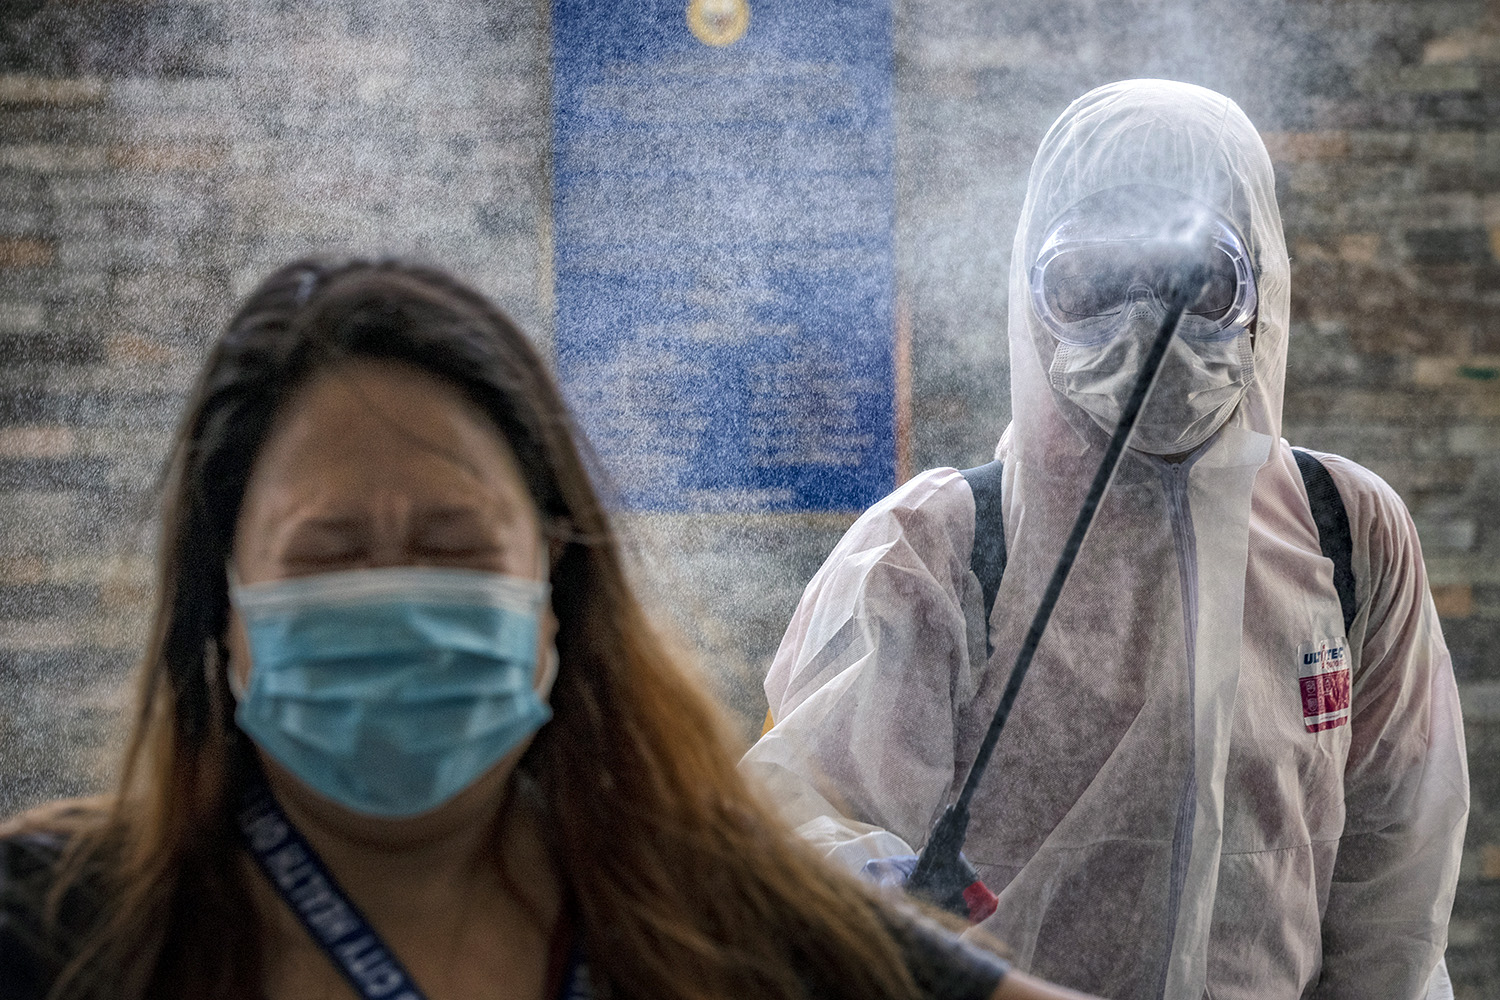 A government employee reacts as she is sprayed with disinfectant before entering an office building in Pasig City, Philippines, on March 19. Ezra Acayan/Getty Images